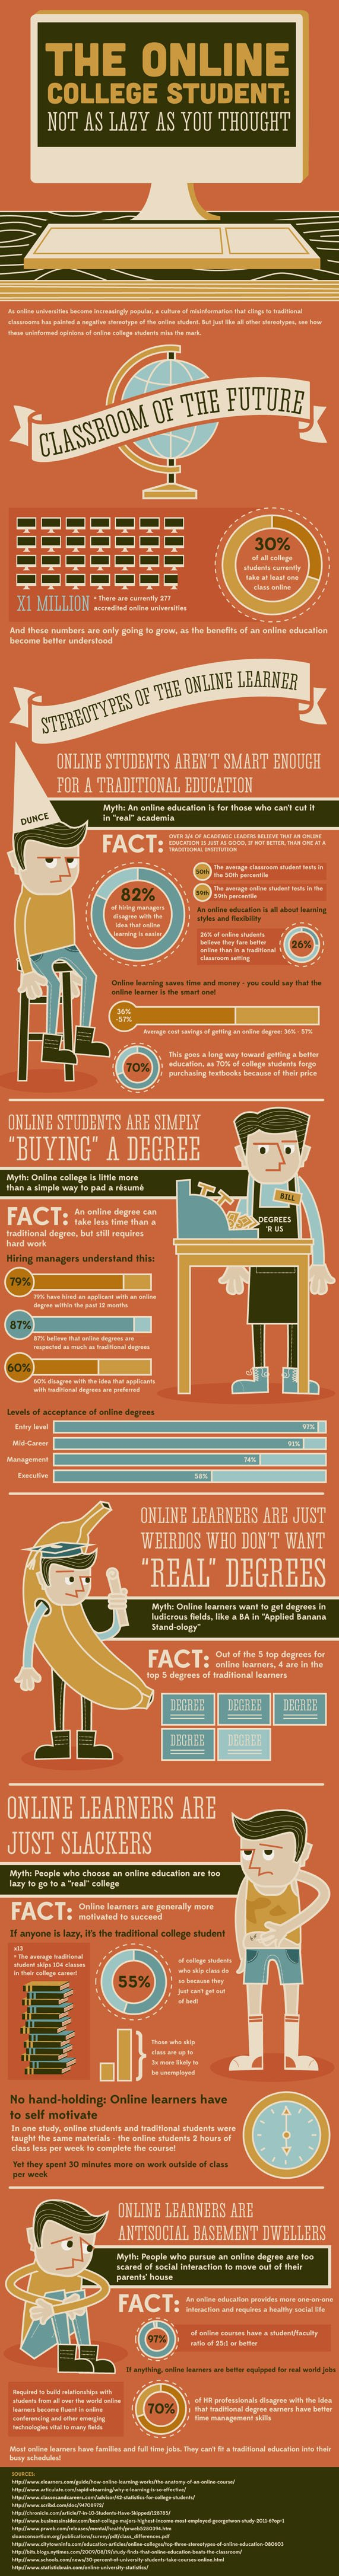 The 5 Stereotypes of the Online College Student Infographic